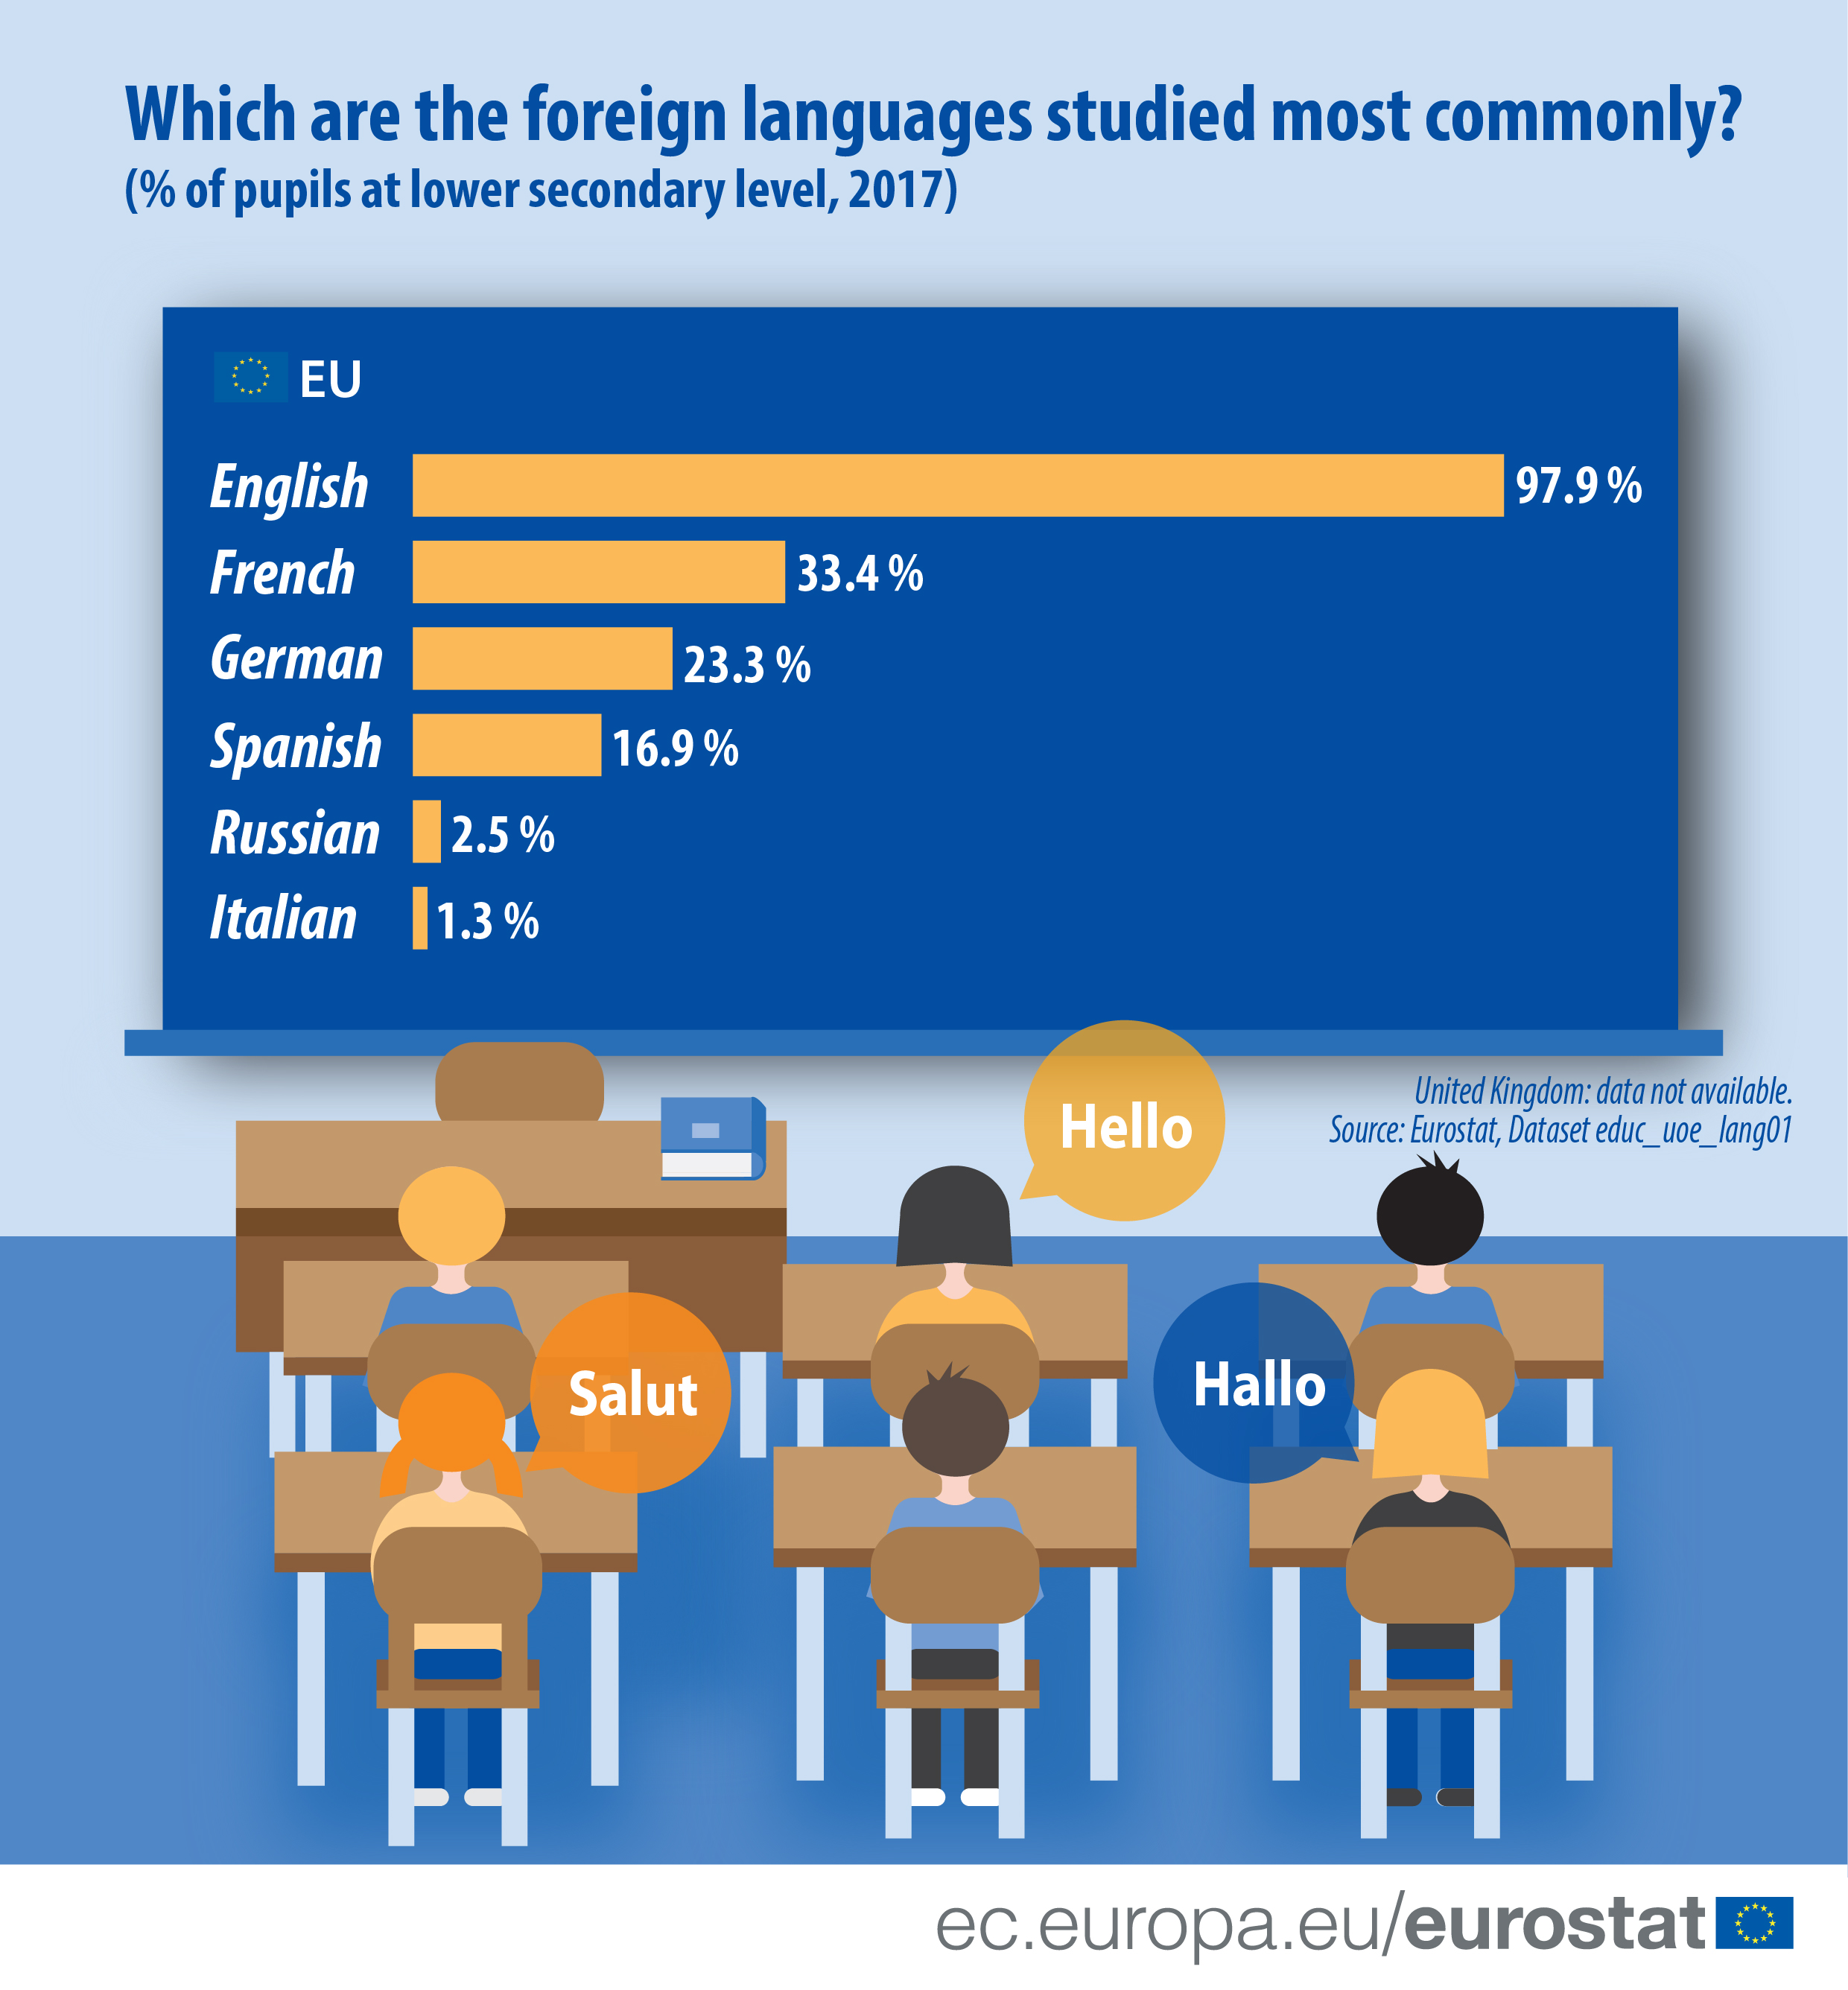 Graphic: Which are the most studied foreign languages? 2017 Data